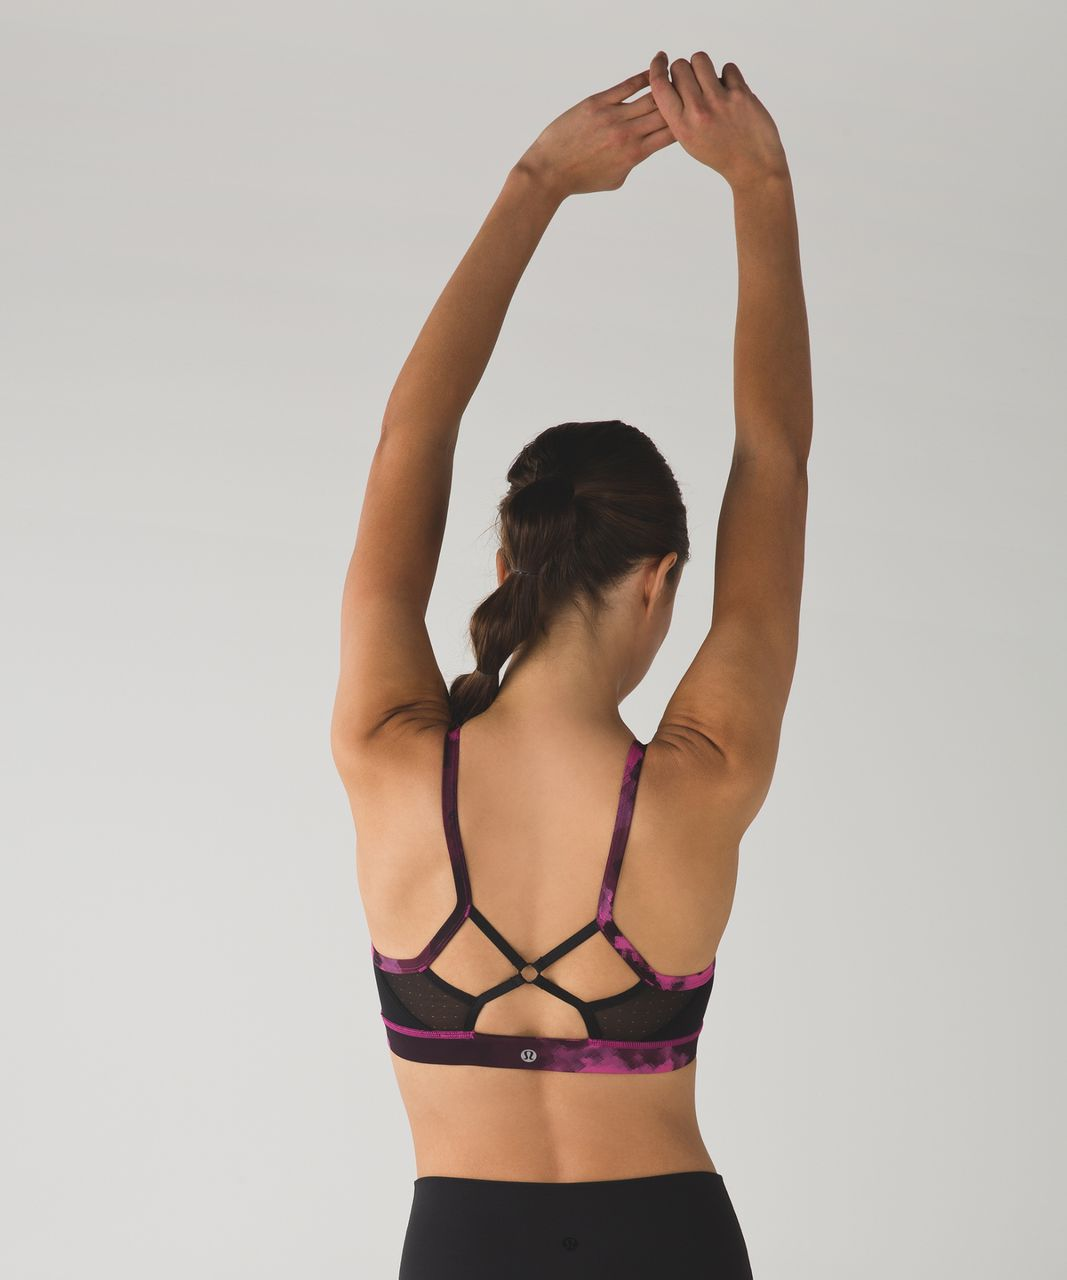 Lululemon Sweaty Endeavor Bra - Blooming Pixie Raspberry Black / Black